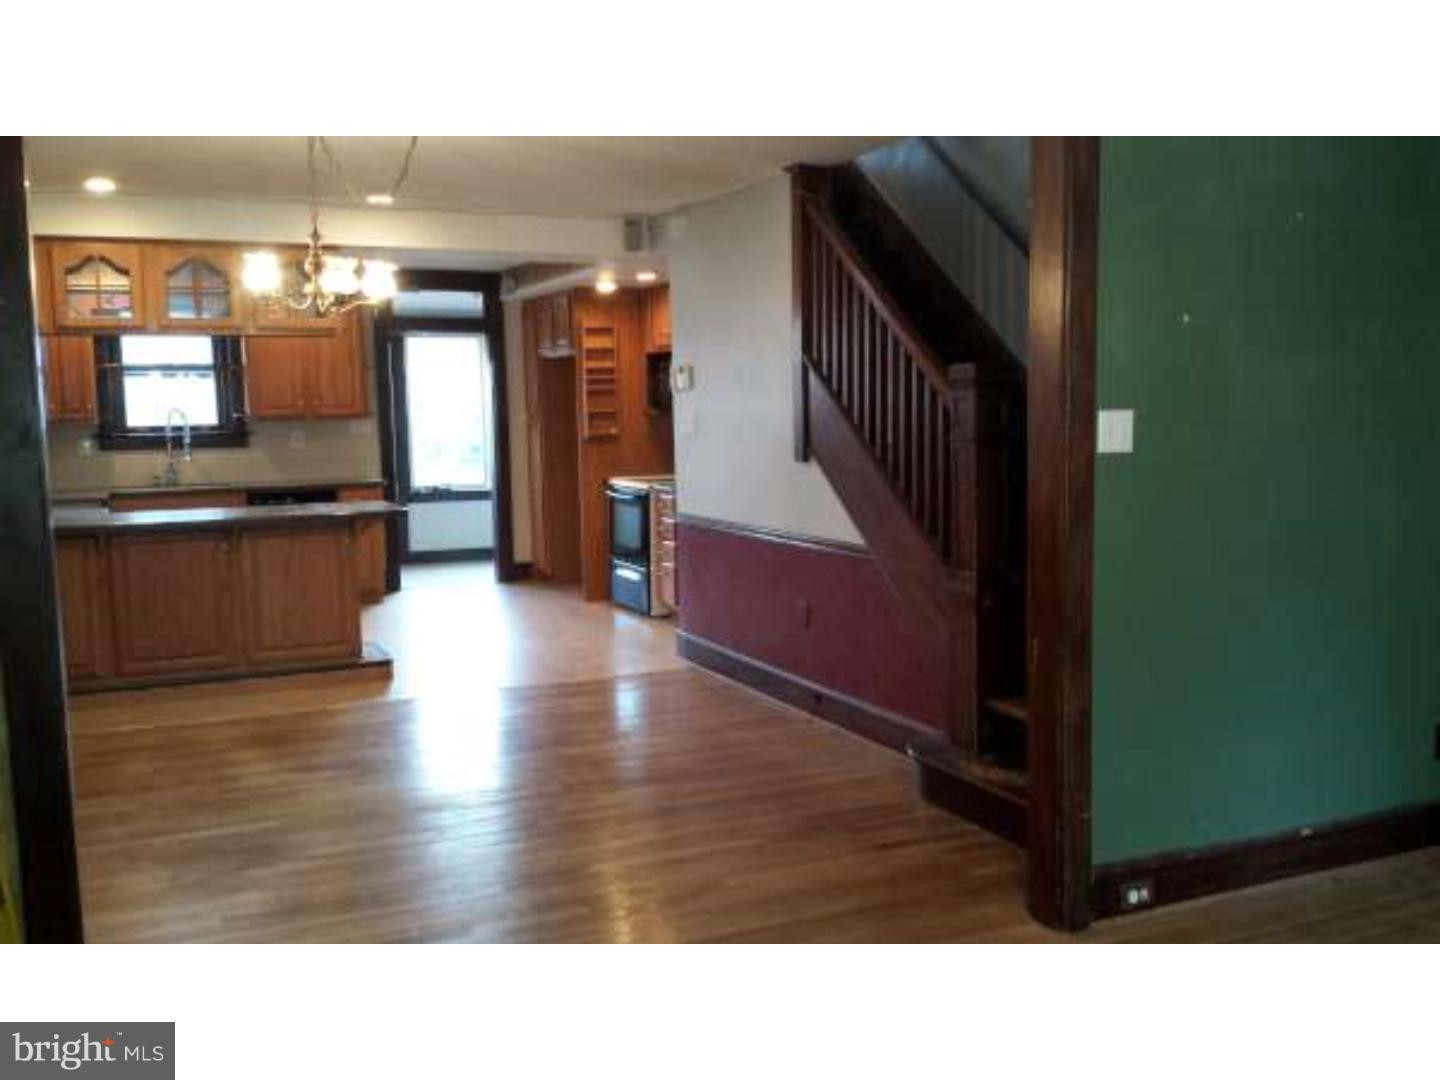 hardwood floor refinishing bethlehem pa of 4 and more bedroom rentals in montgomery county montgomery county within 1475